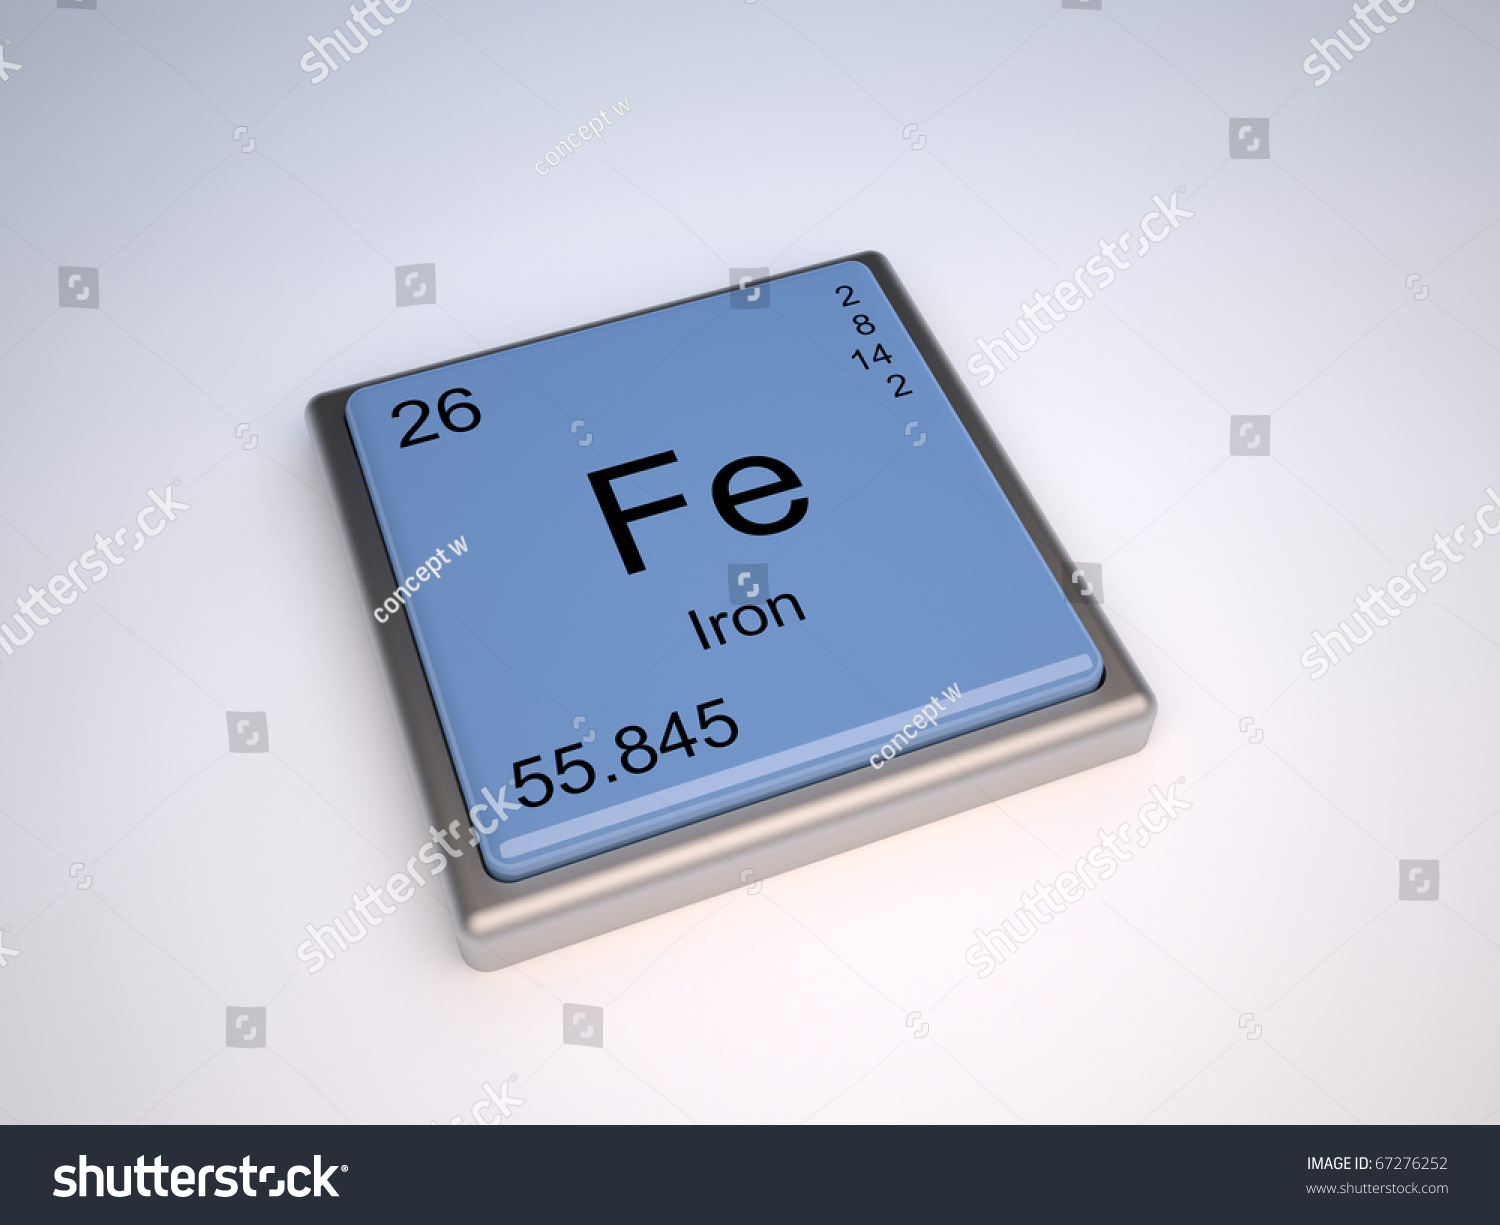 Iron chemical element periodic table symbol stock - What is fe on the periodic table ...